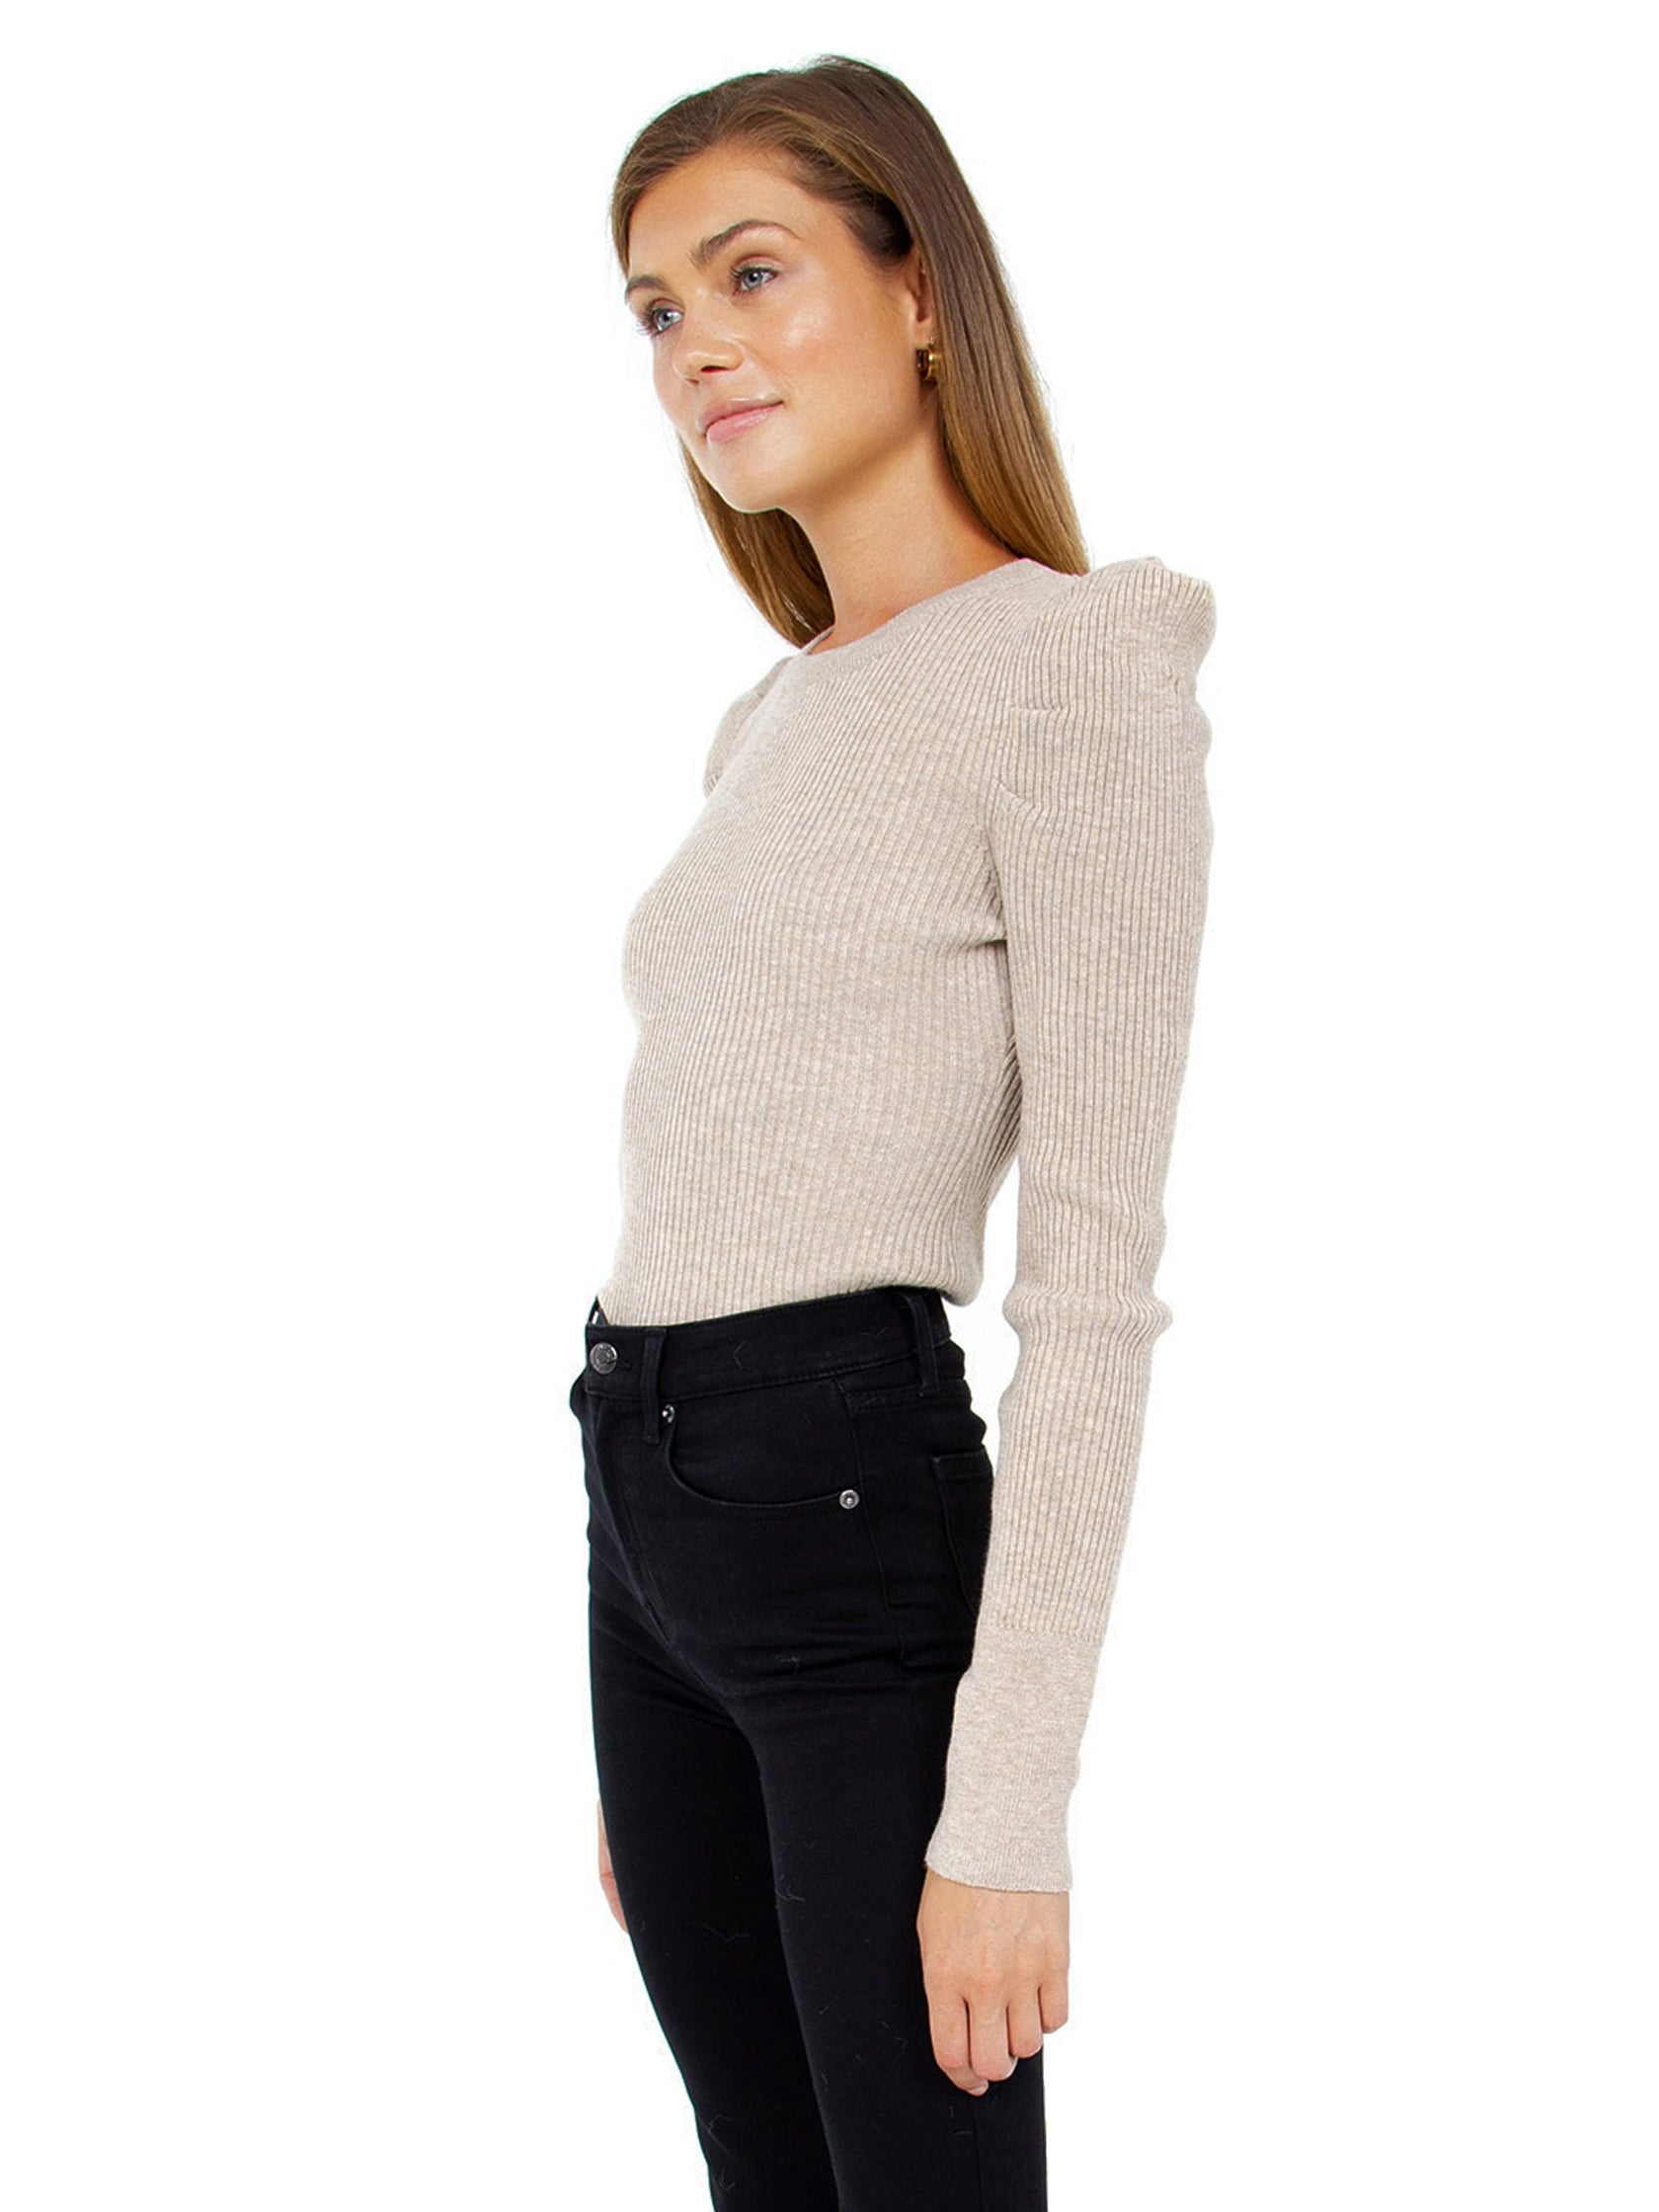 Women wearing a sweater rental from FashionPass called Puff Sleeve Rib Sweater